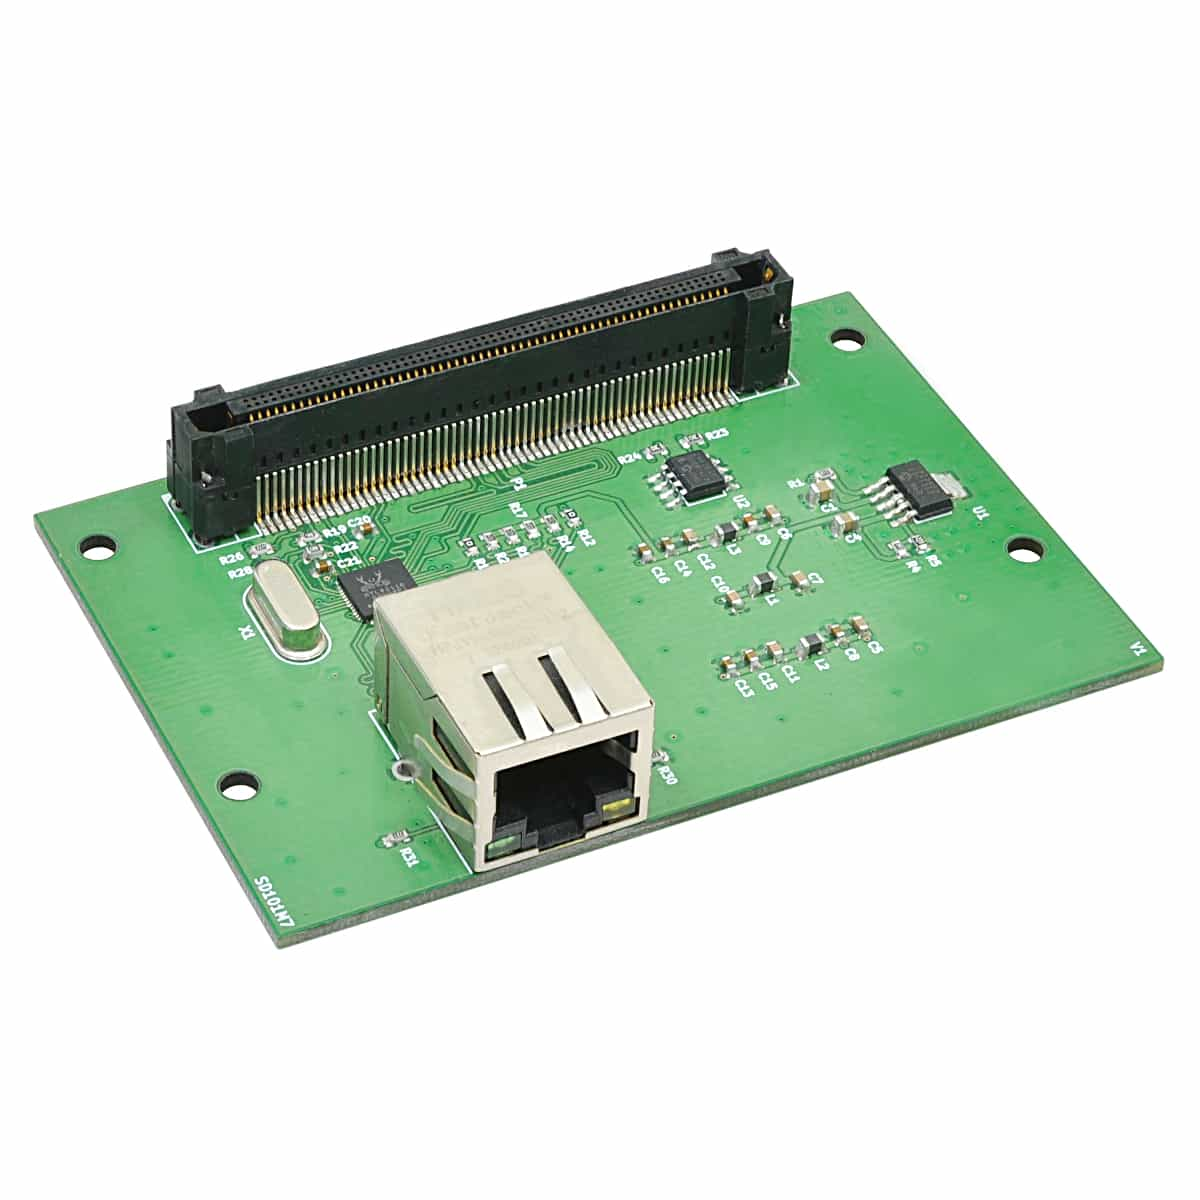 RTL8211E Gigabit Ethernet Expansion Module | Numato Lab